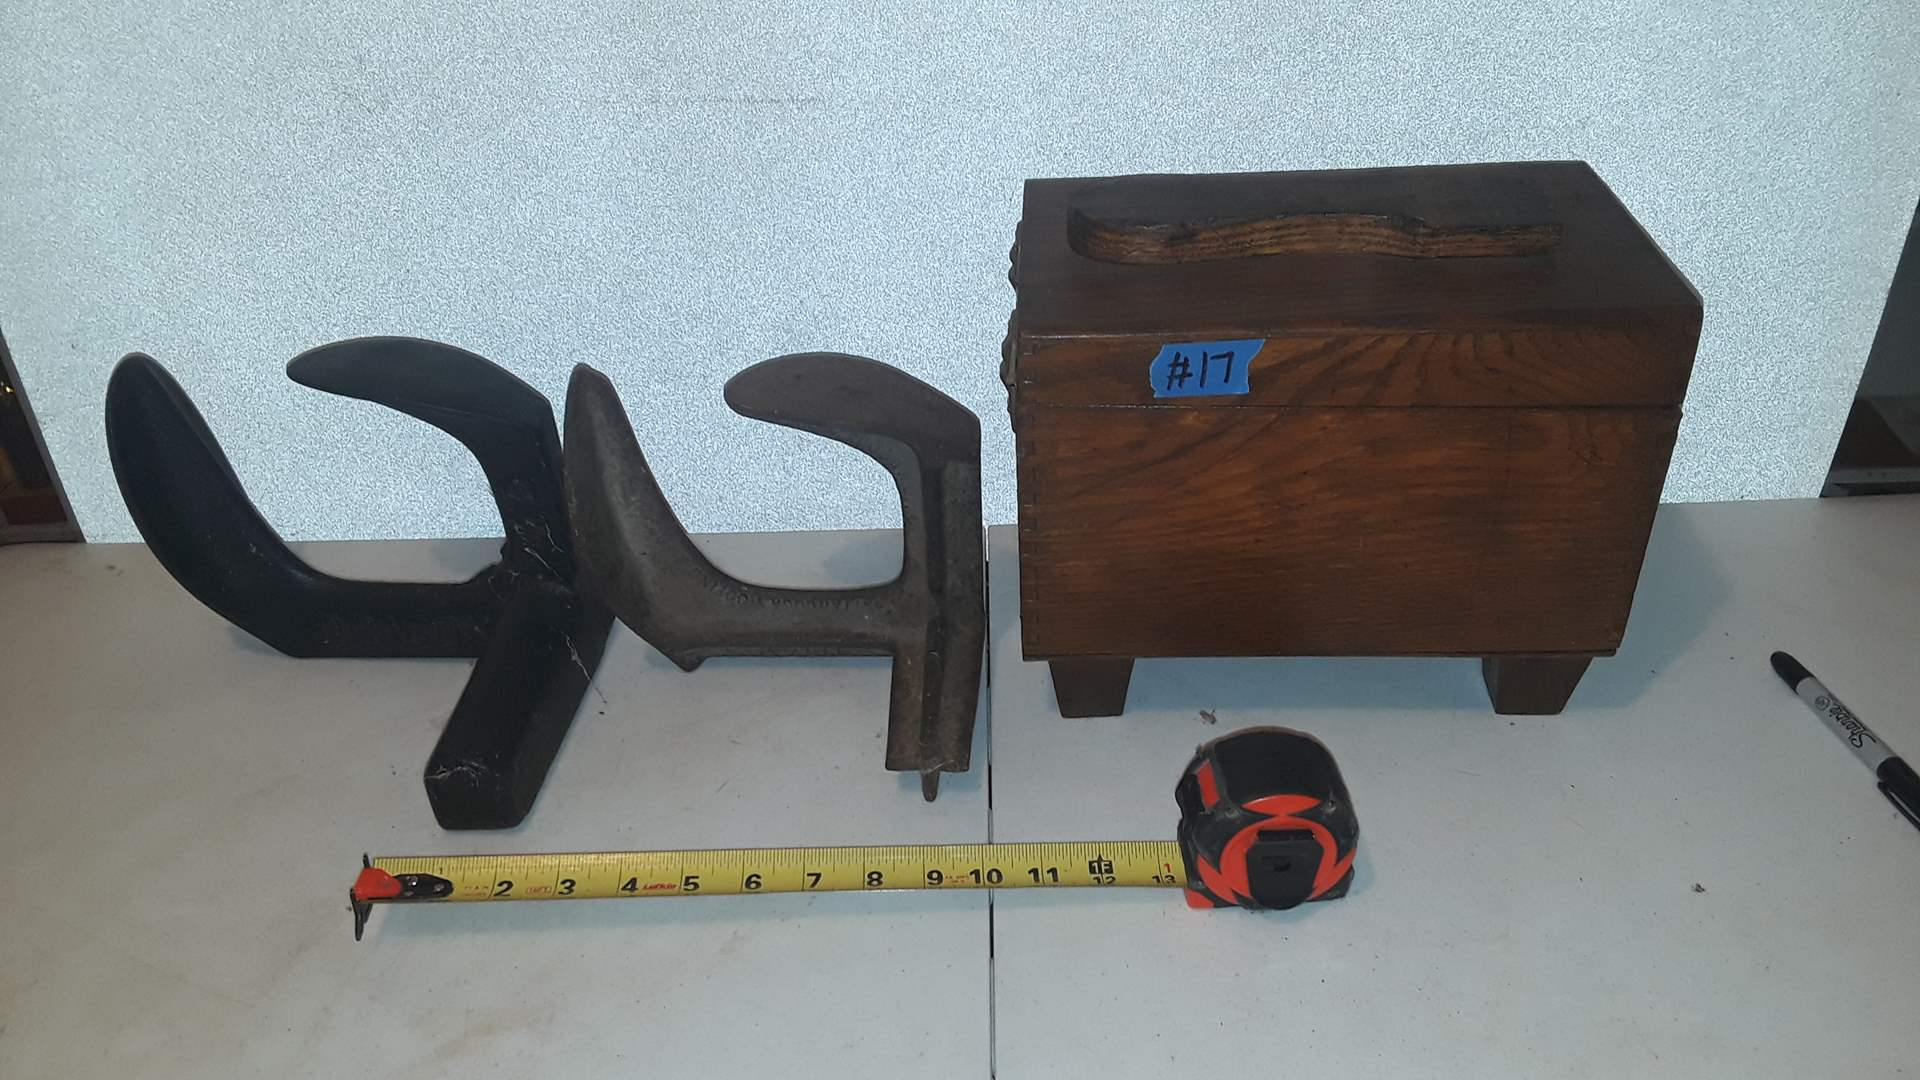 Lot # 17 CAST IRON COBBLERS TOOLS AND SHOE SHINE BOX